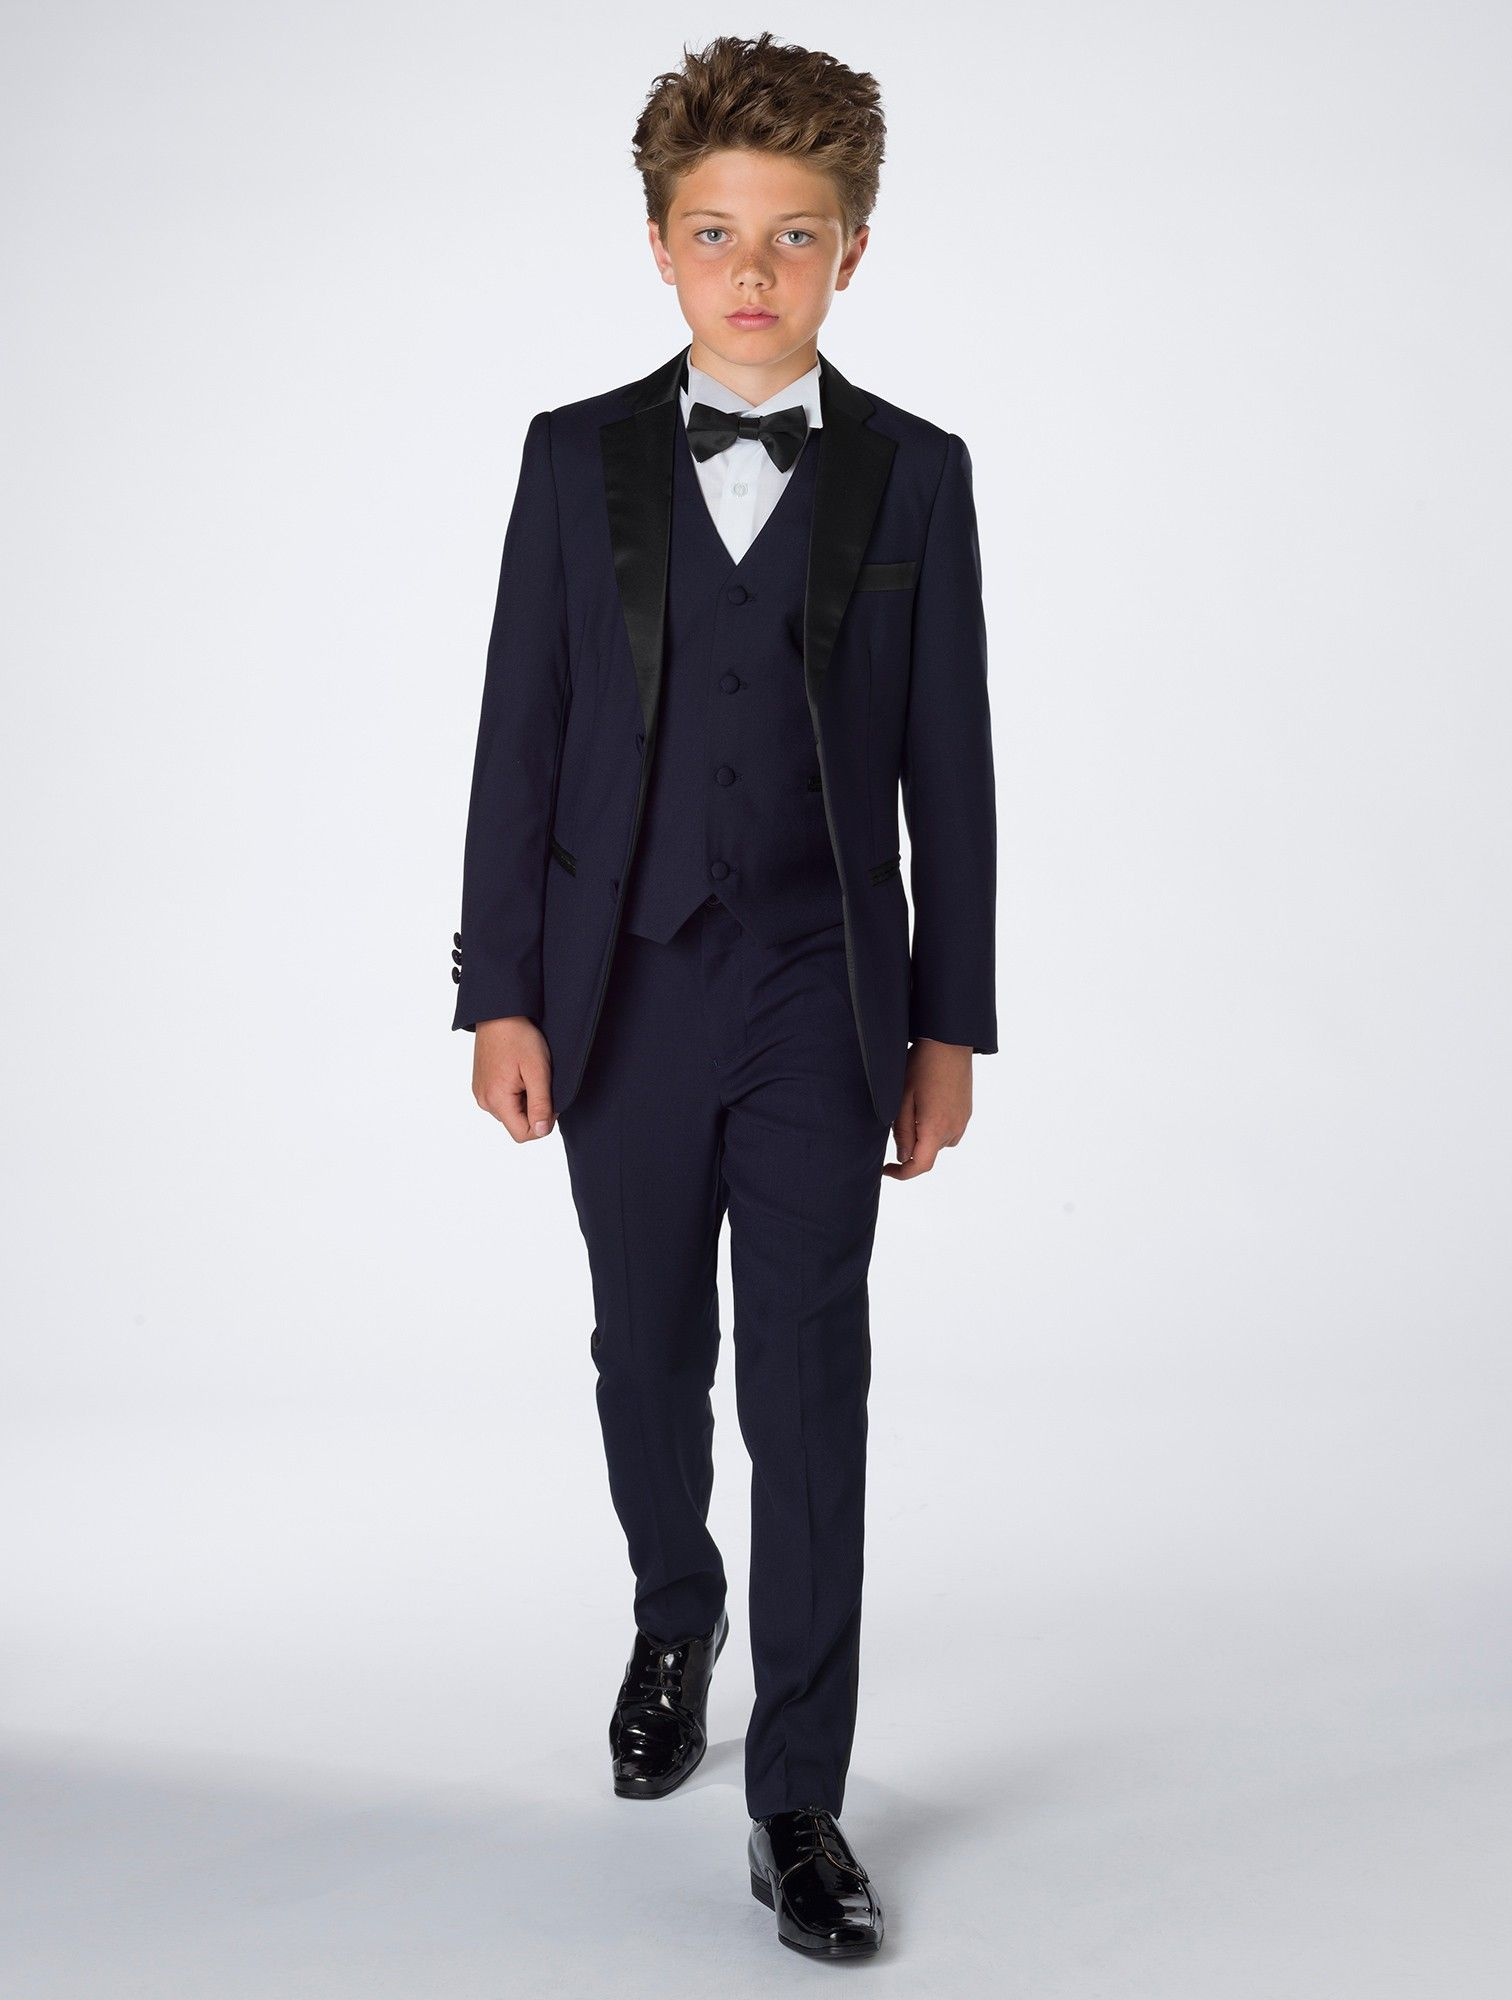 Boys Navy Tuxedo Prom Suits Roco